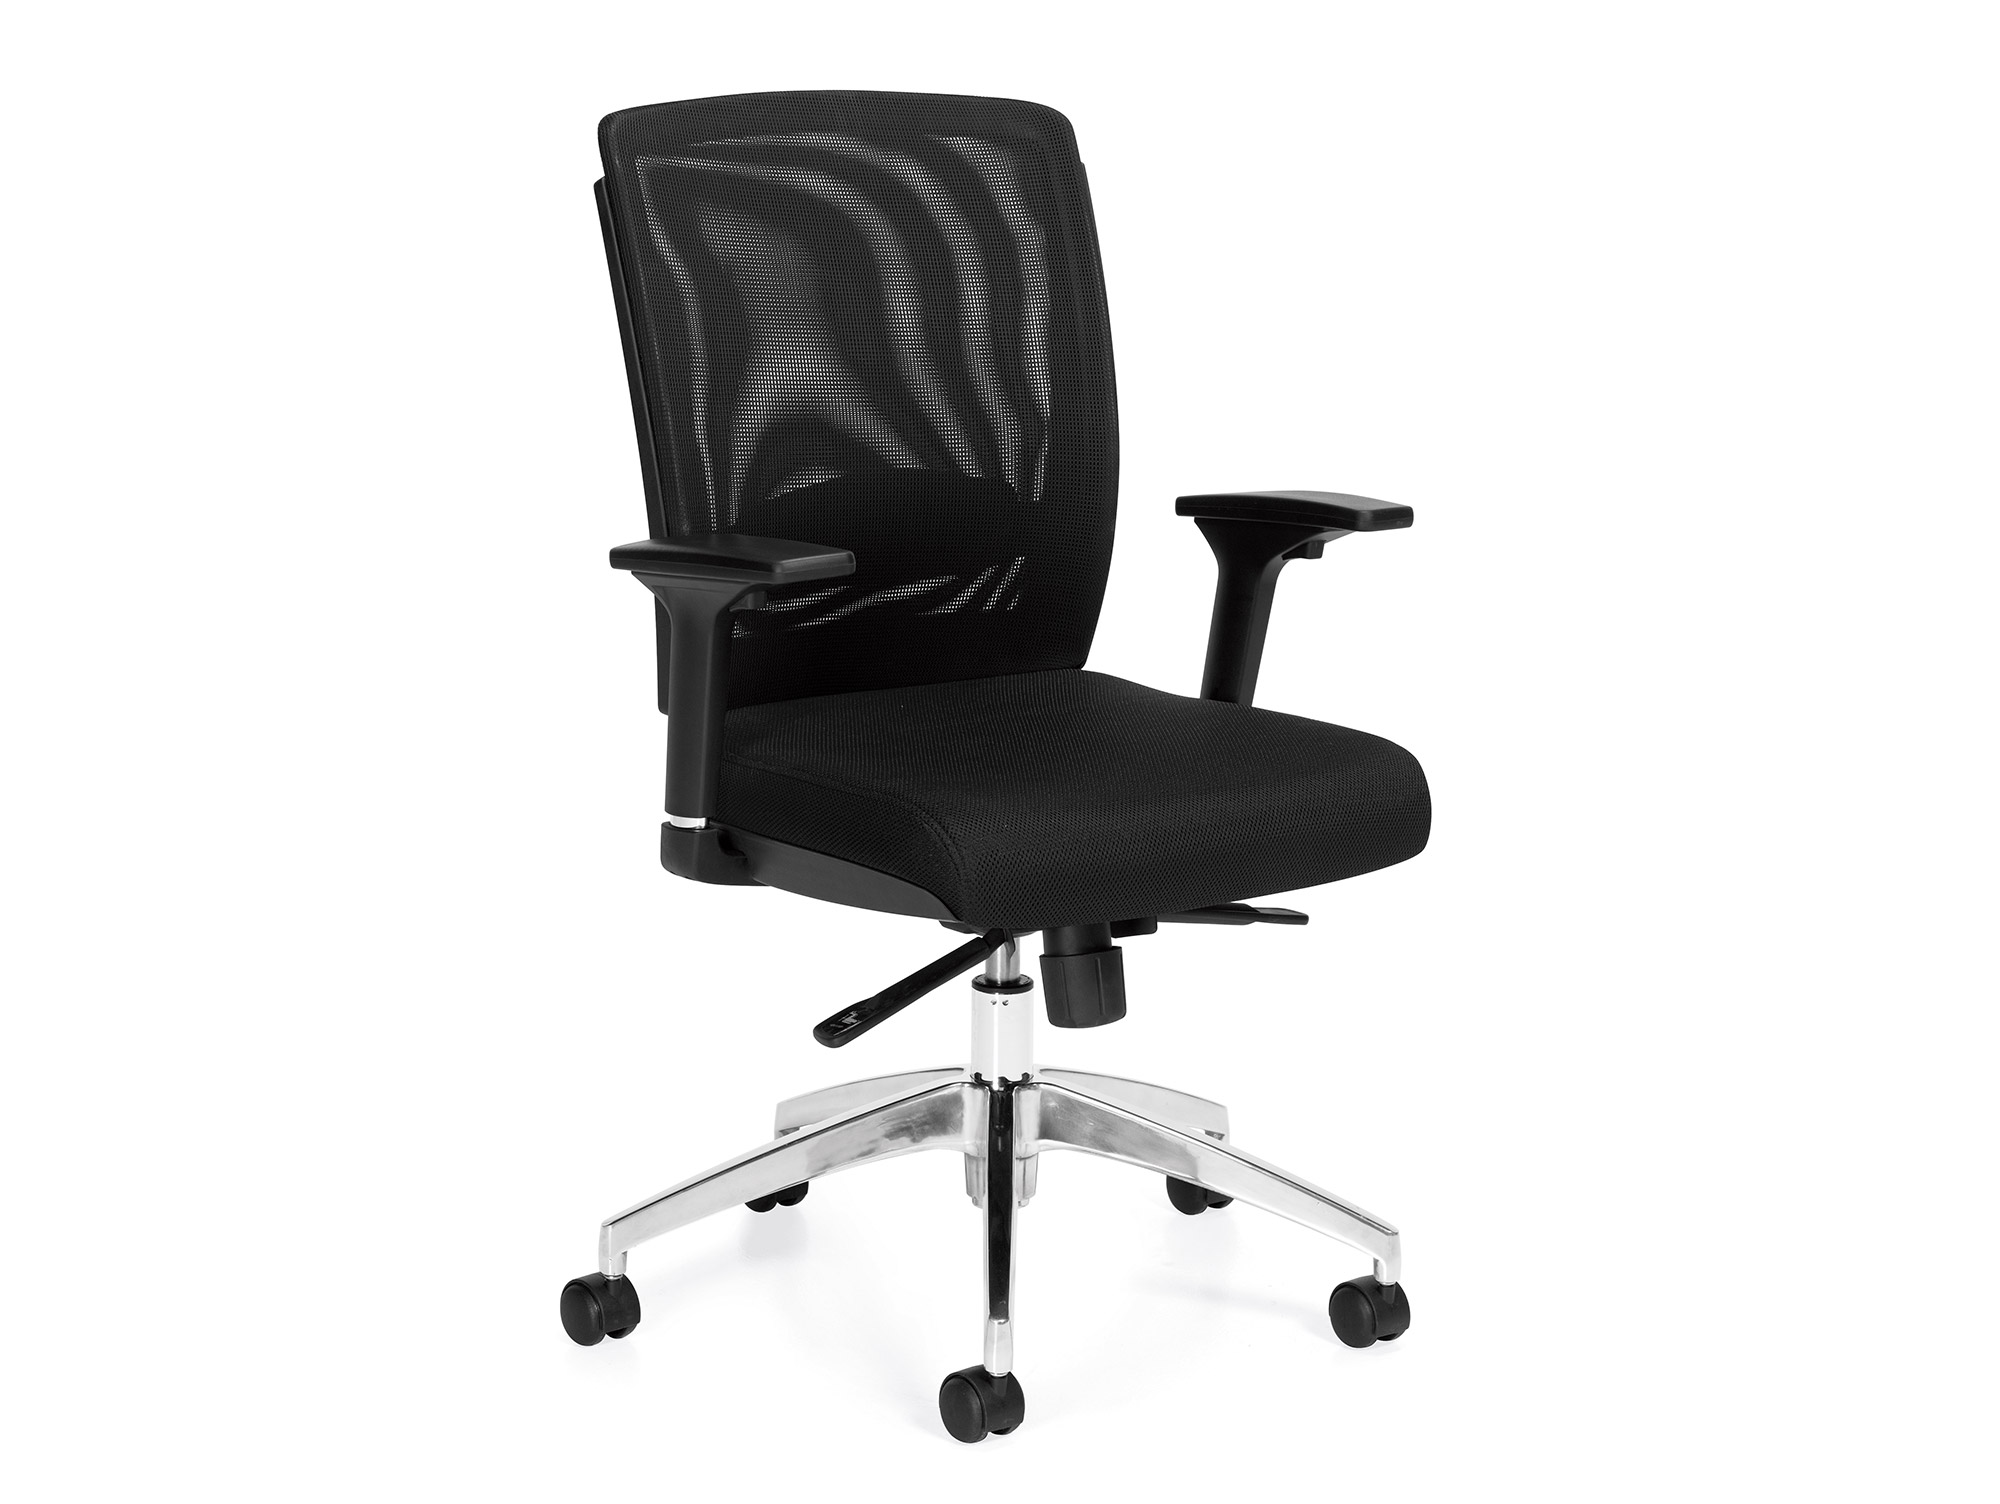 chairs for office hoveround power sarasota fl top selling by cubicles com 10904b